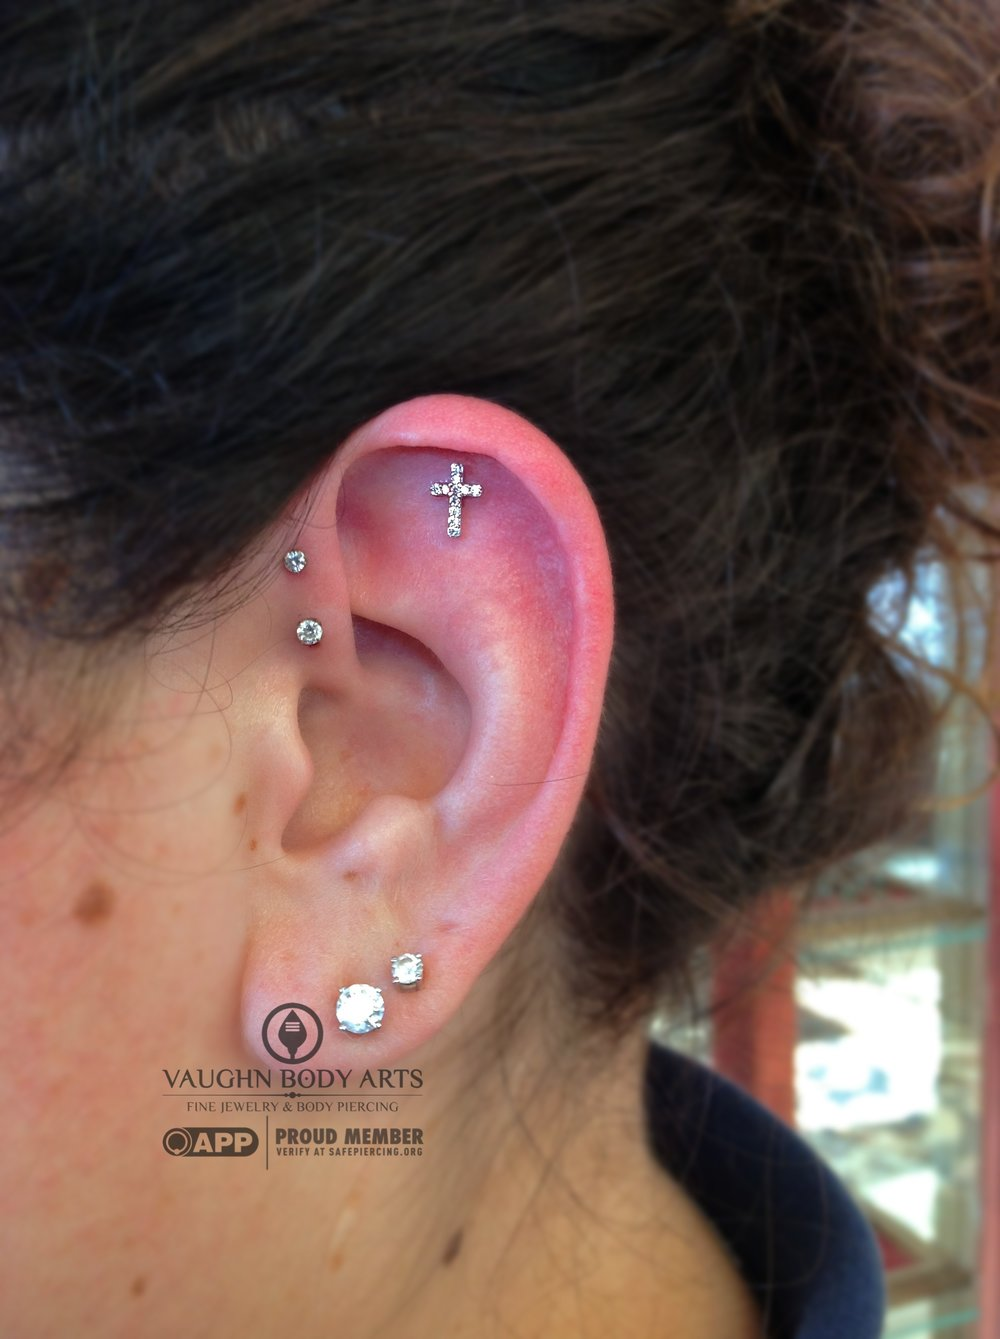 Helix piercing featuring a platinum and genuine diamond cross end from BVLA.